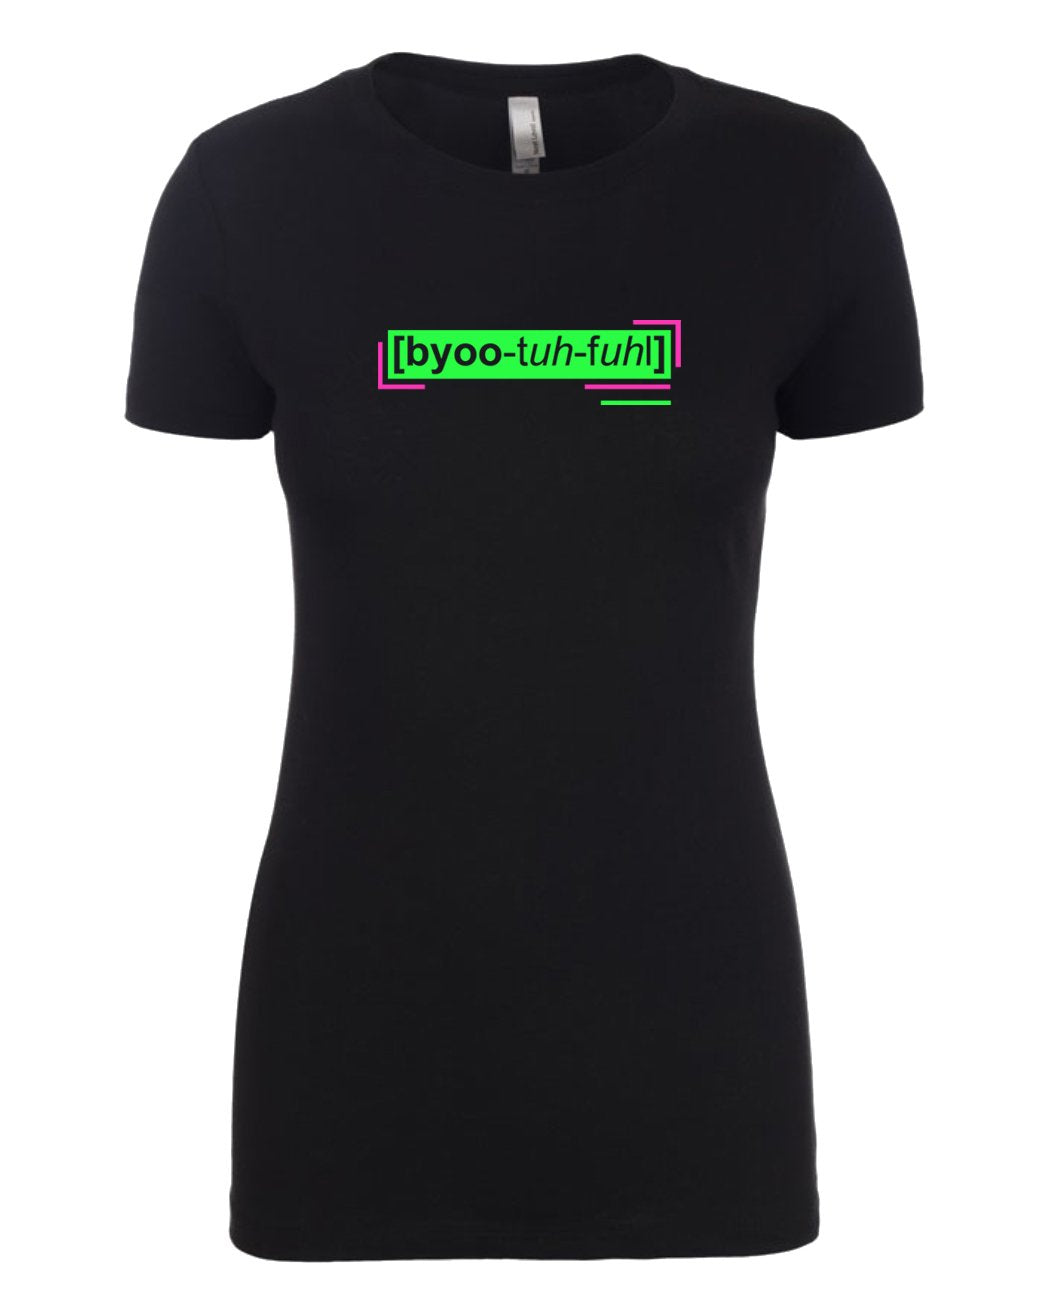 florescent green beautiful neon streetwear t shirt for women